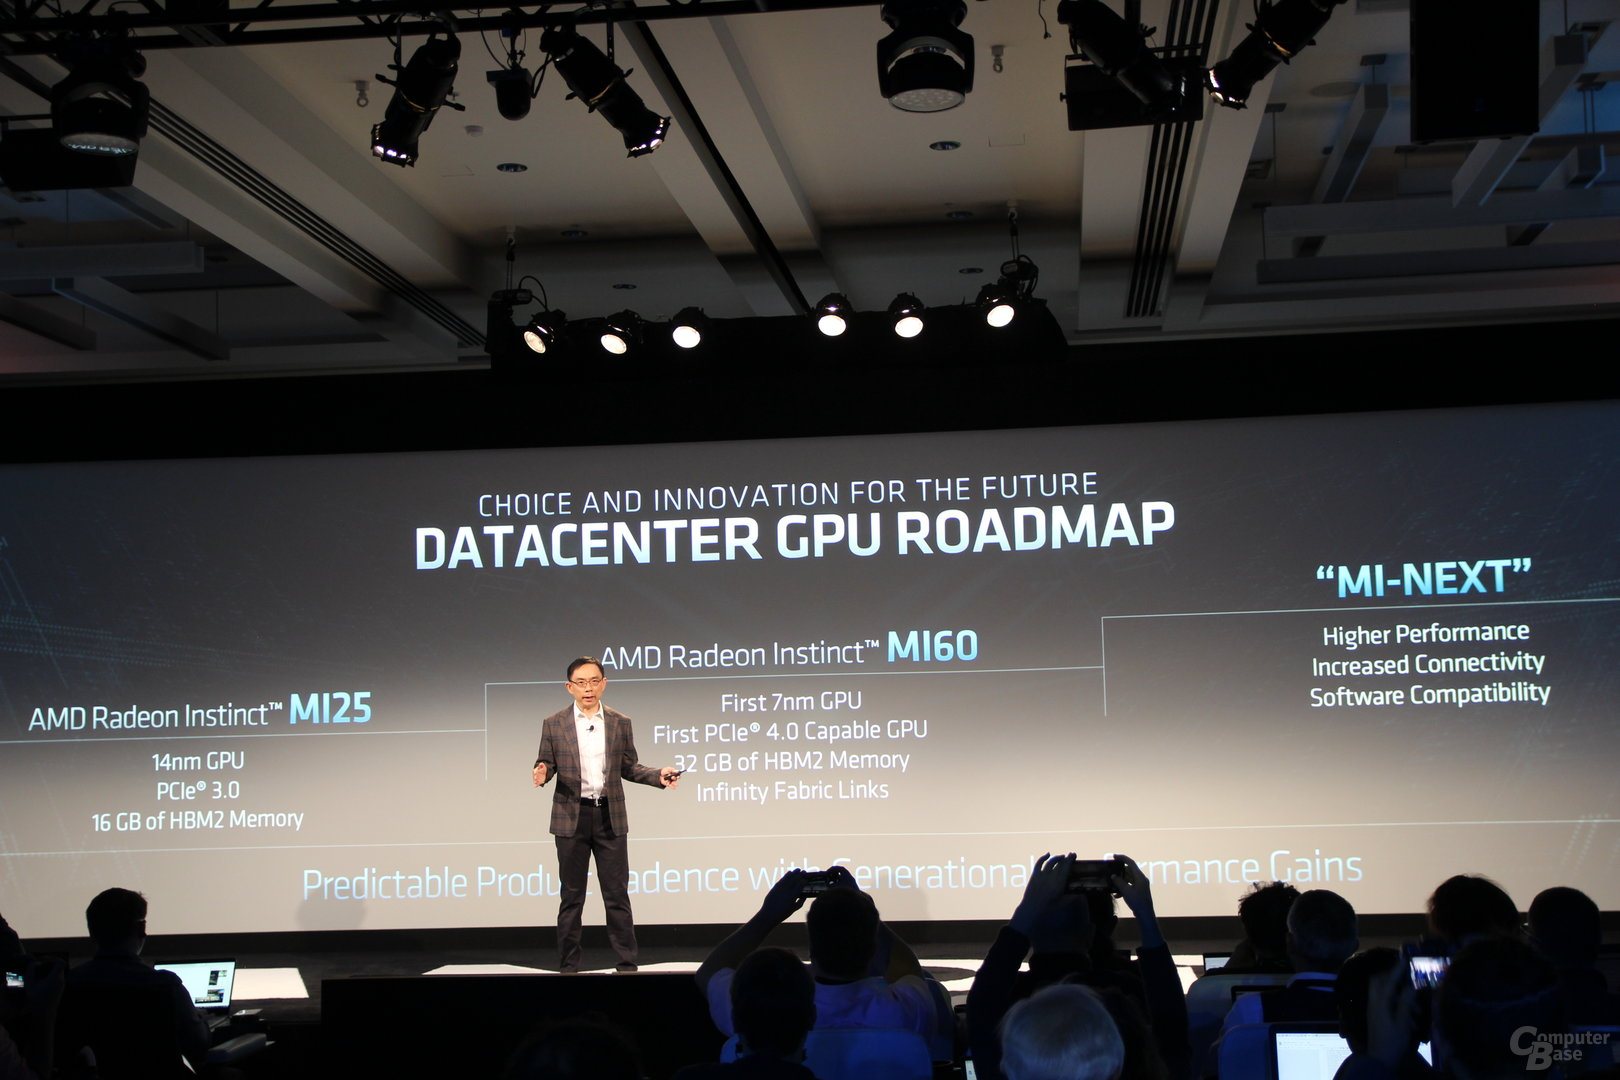 AMD Datacenter GPU Roadmap